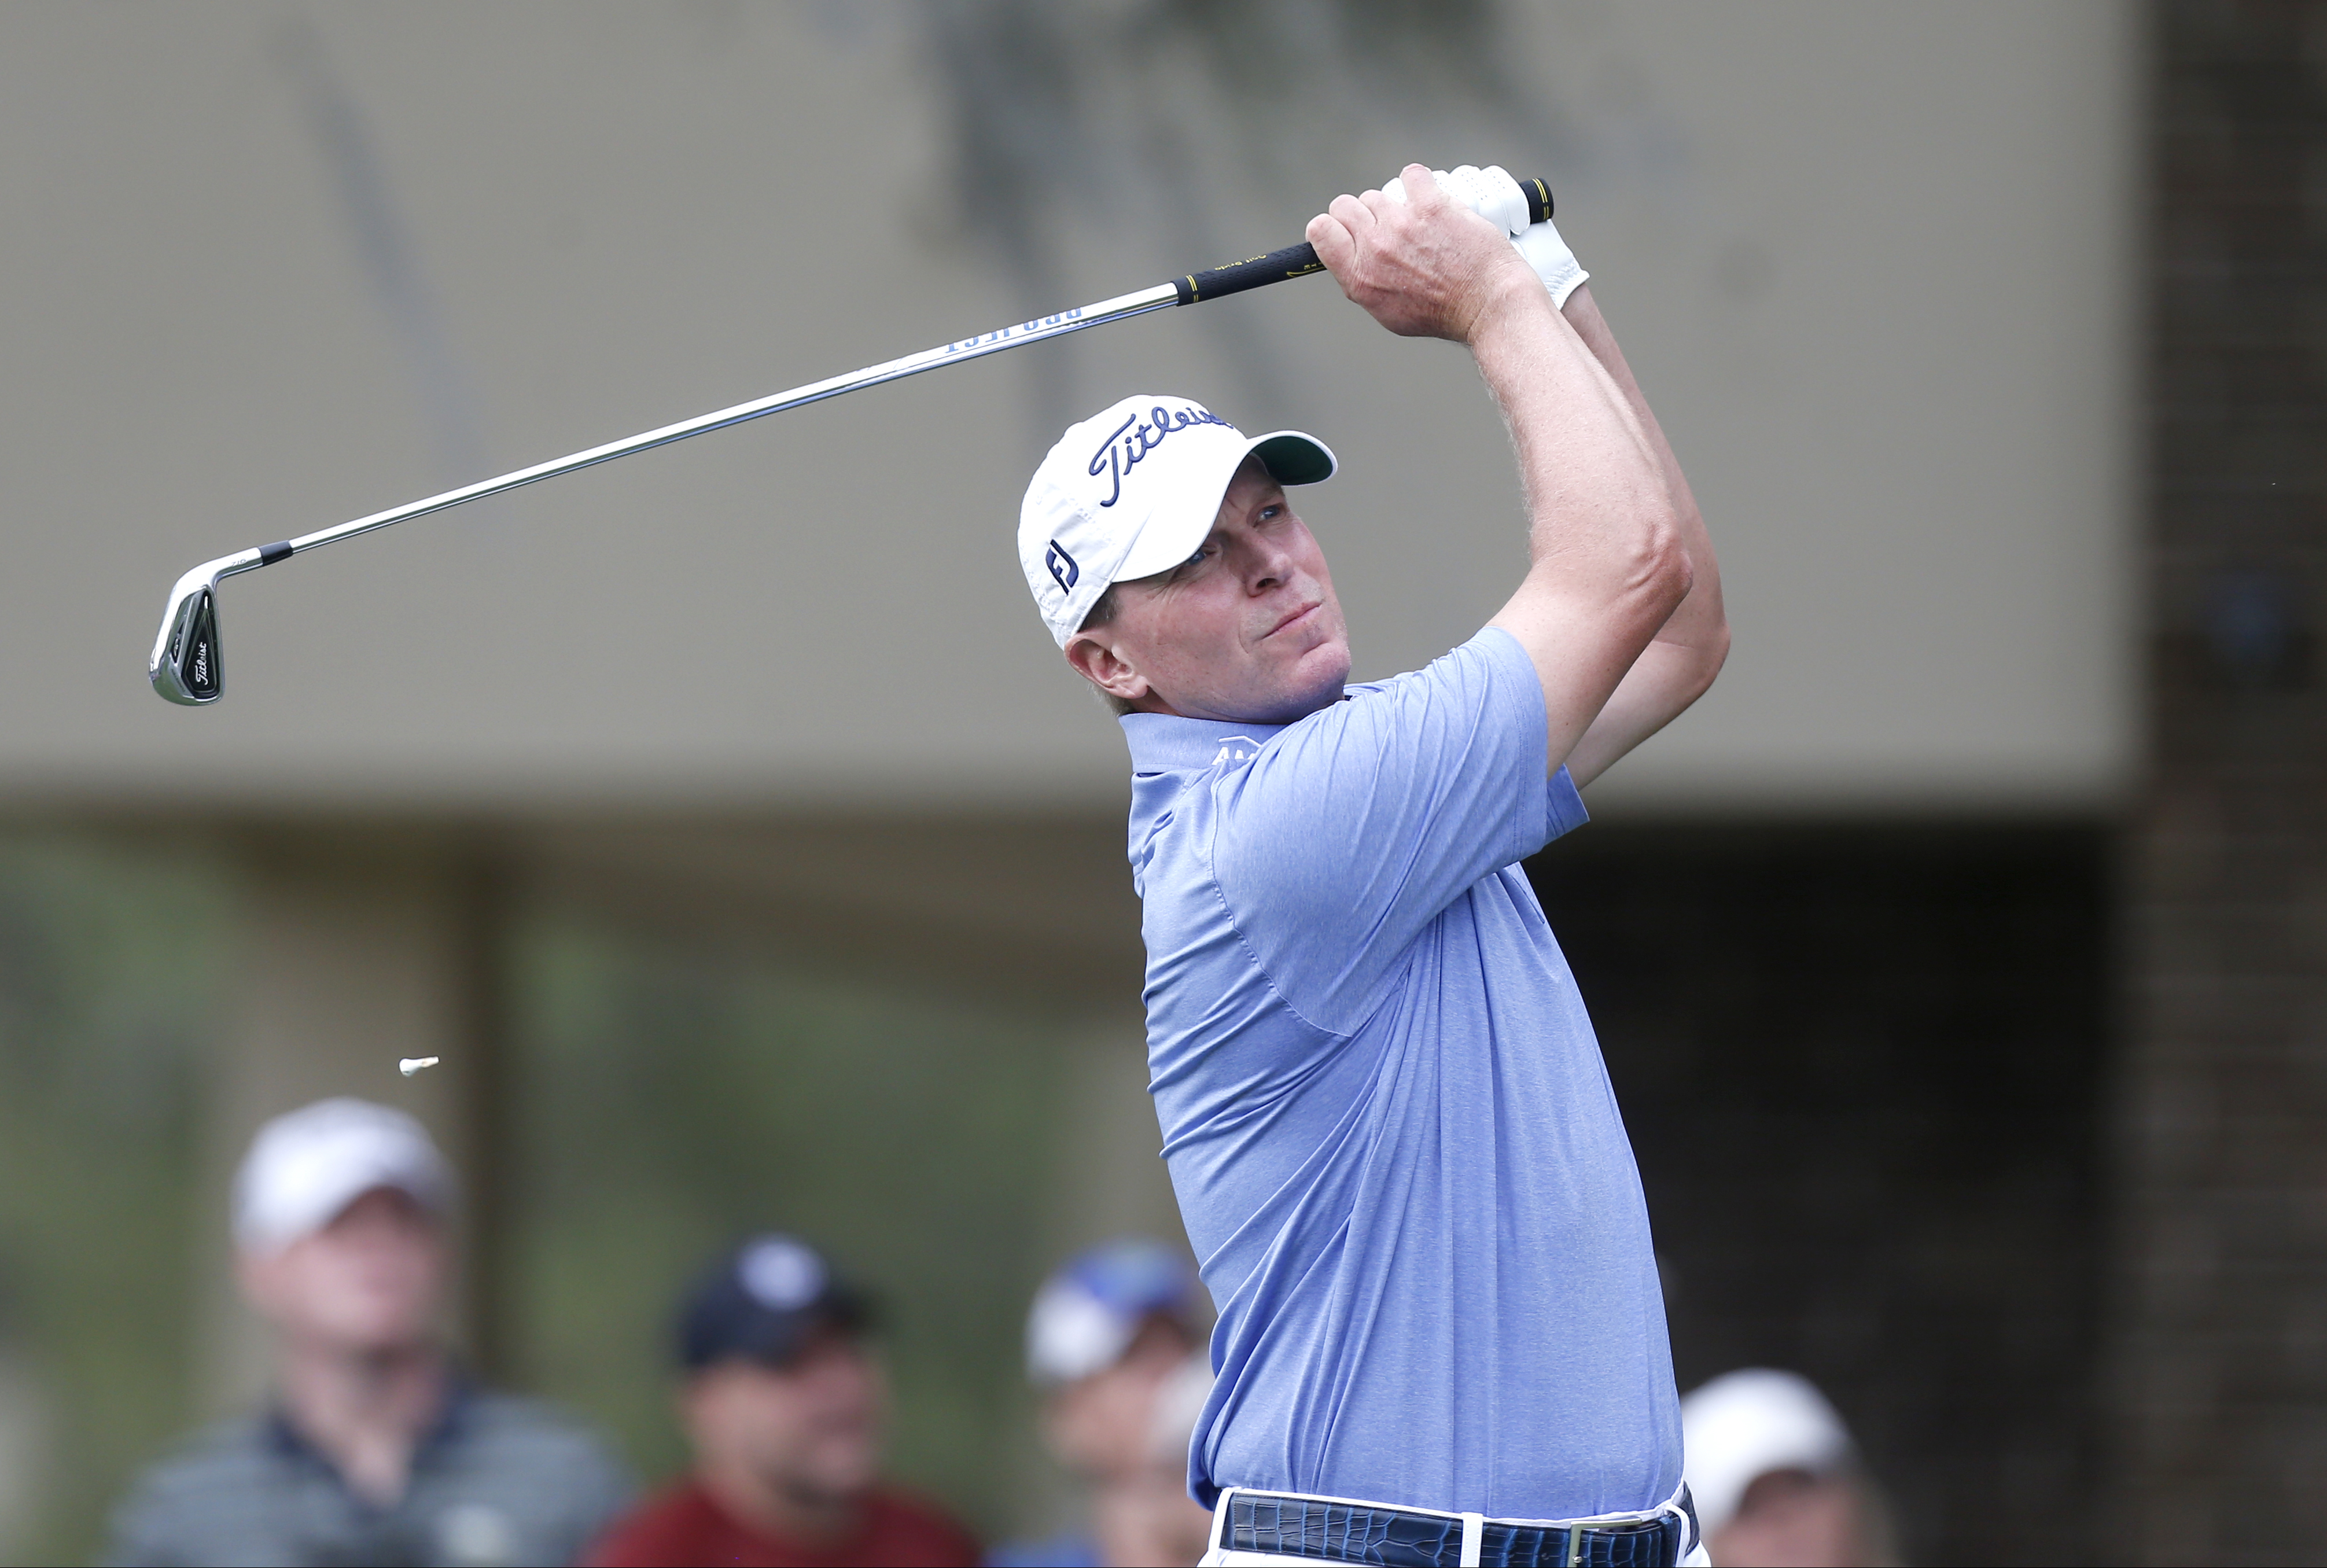 Steve Stricker takes his tee shot on the second hole during the final round of the Valspar Championship golf tournament Sunday, March 13, 2016, in Palm Harbor, Fla. (AP Photo/Brian Blanco)